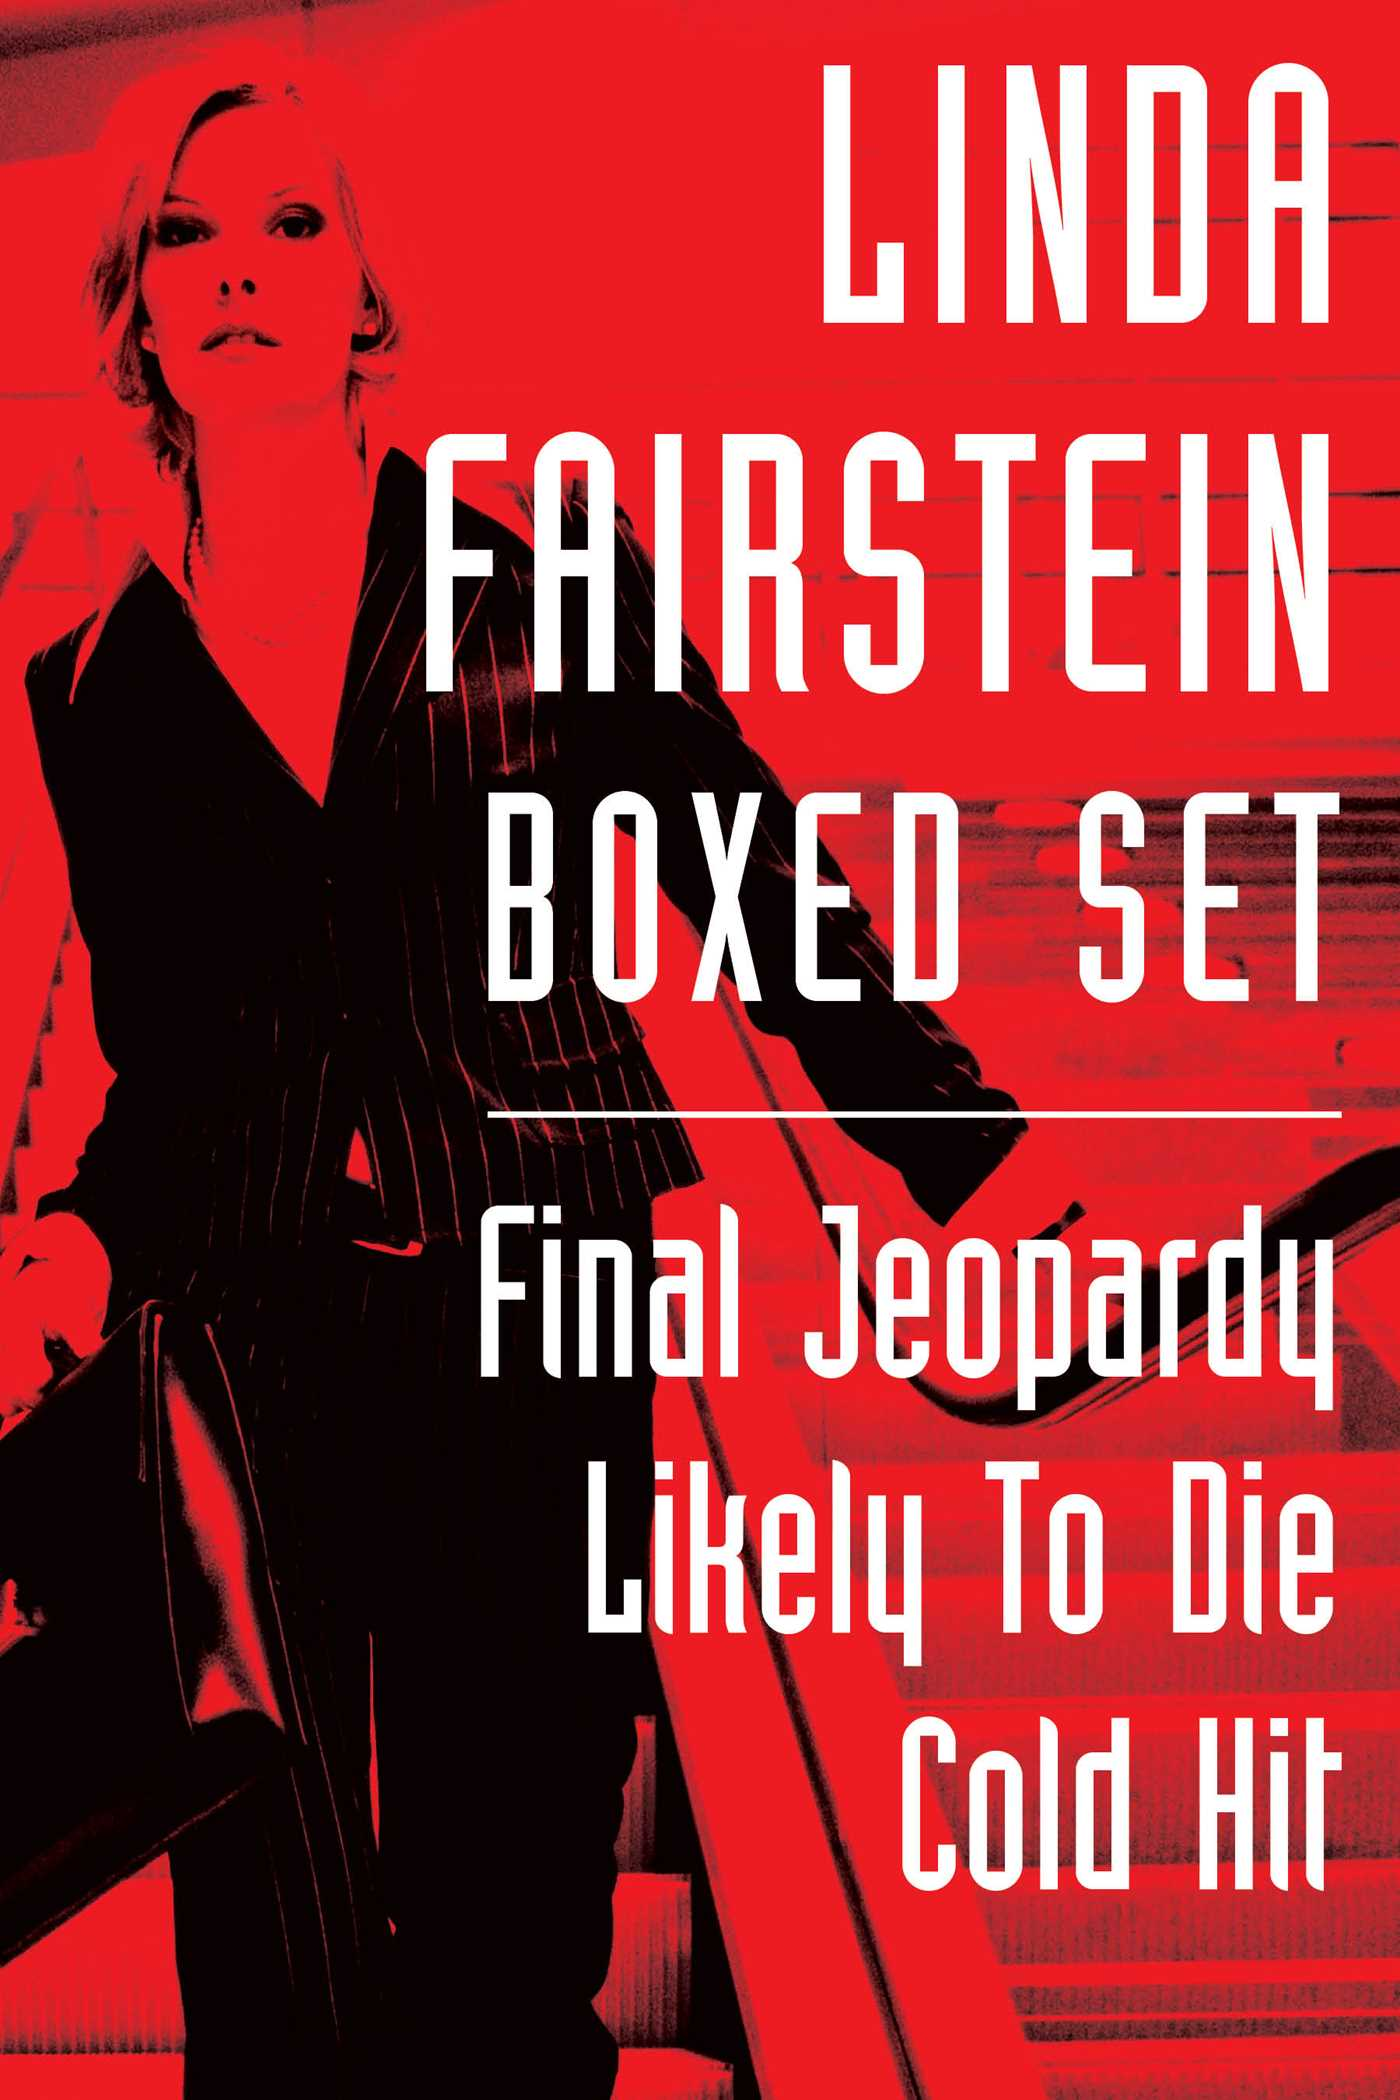 Linda fairstein boxed set 9781451657289 hr